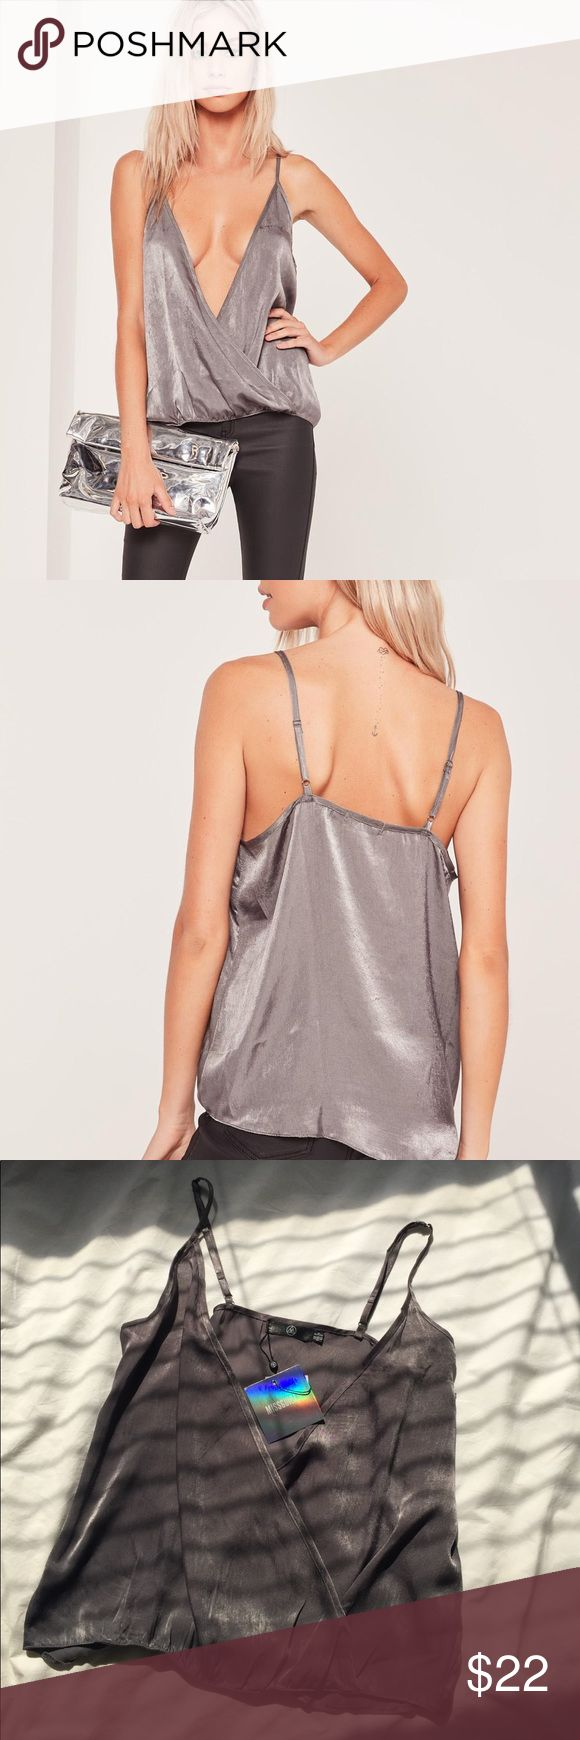 Satin Wrap Over Cami Misguided satin Top in grey. Brand new with tags. Never worn. US 4 is a size Small. Missguided Tops Tank Tops